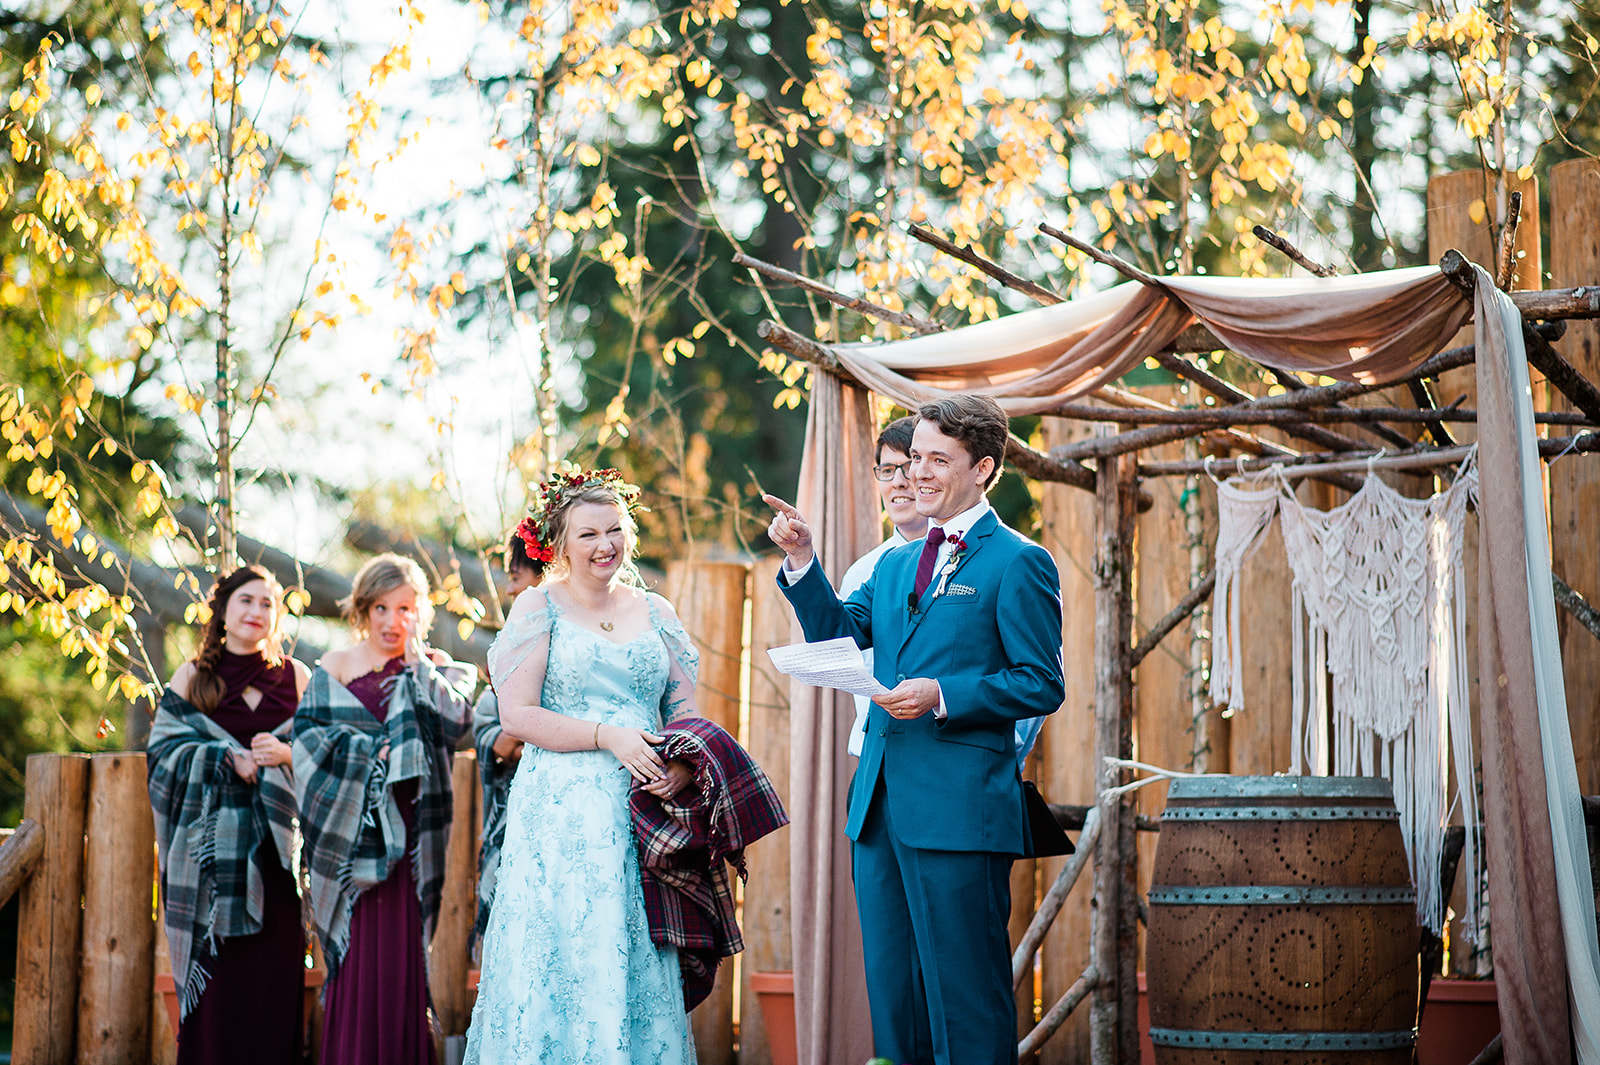 The groom's vows in front of the stage, photo by Photos by Betty  https://bettyelainephotography.com